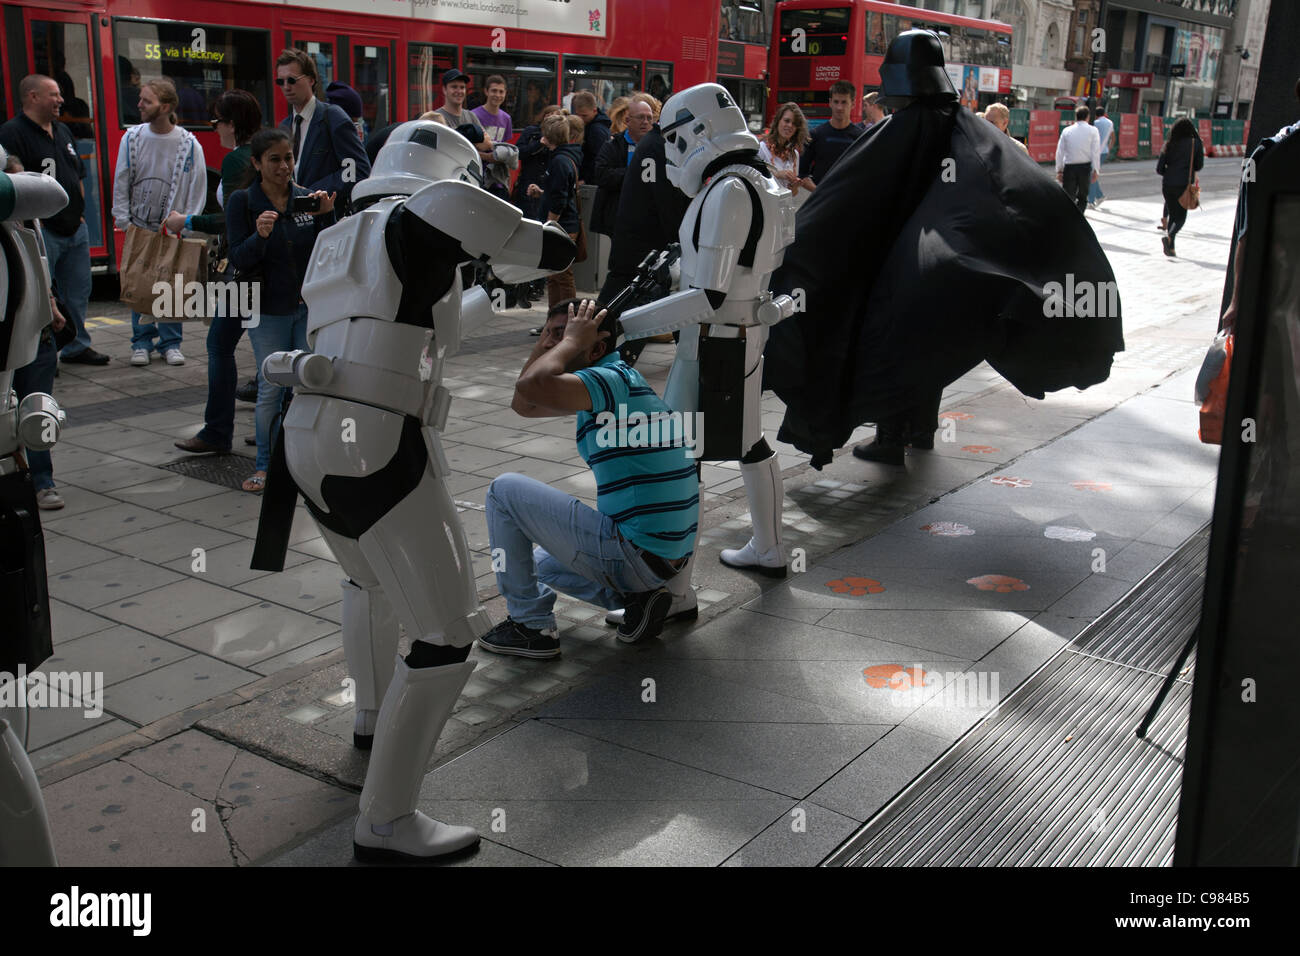 star wars characters in london - Stock Image